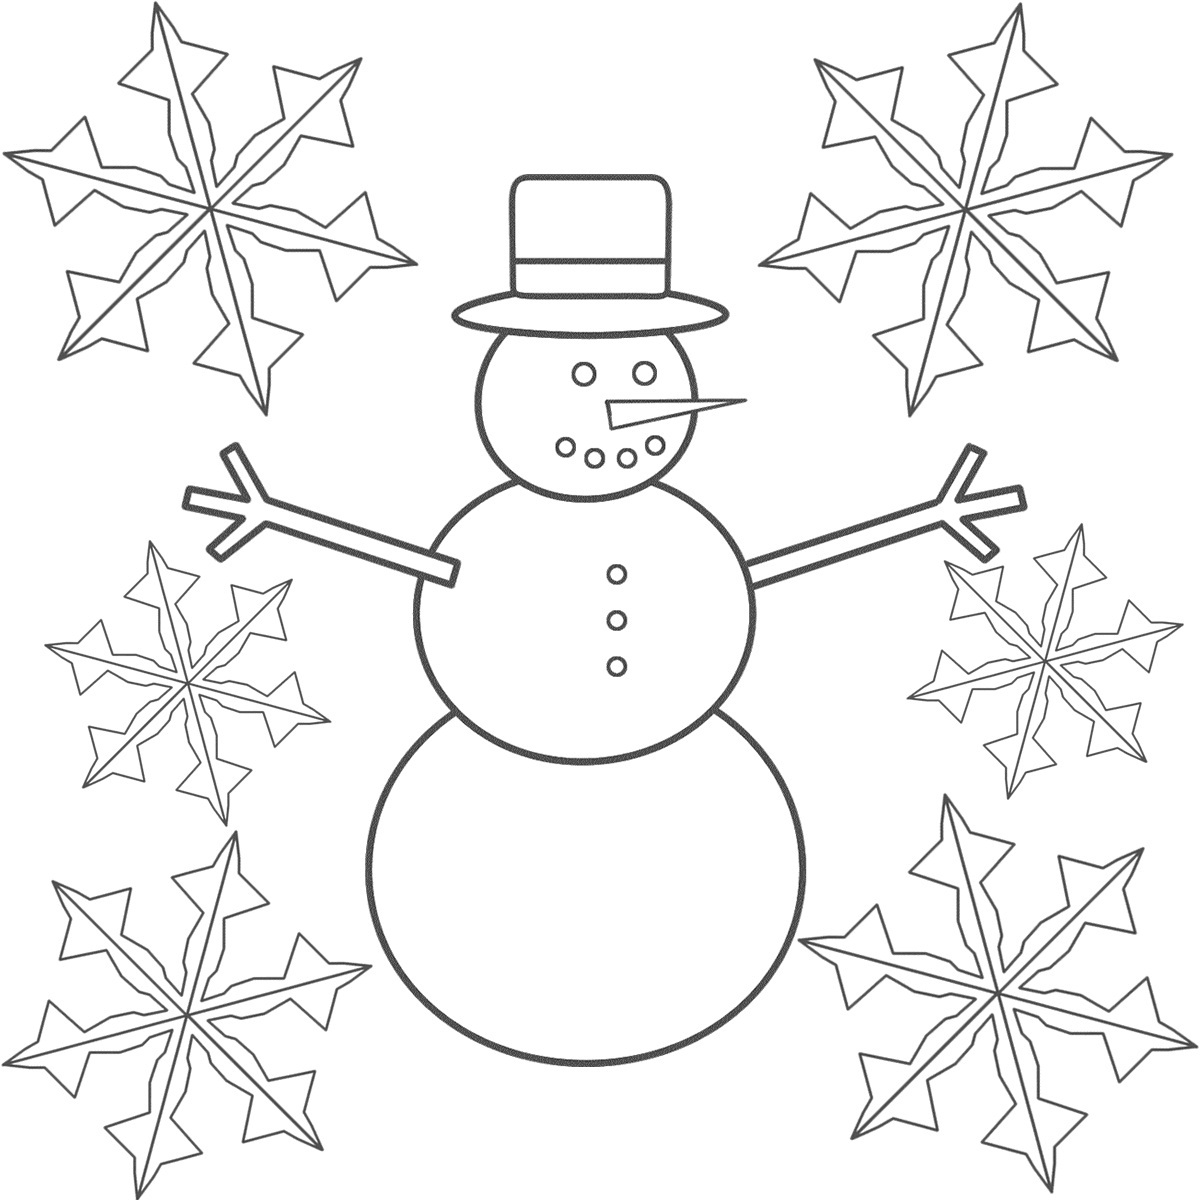 Simple Snowflake Coloring Pages At Getdrawings Com Free For